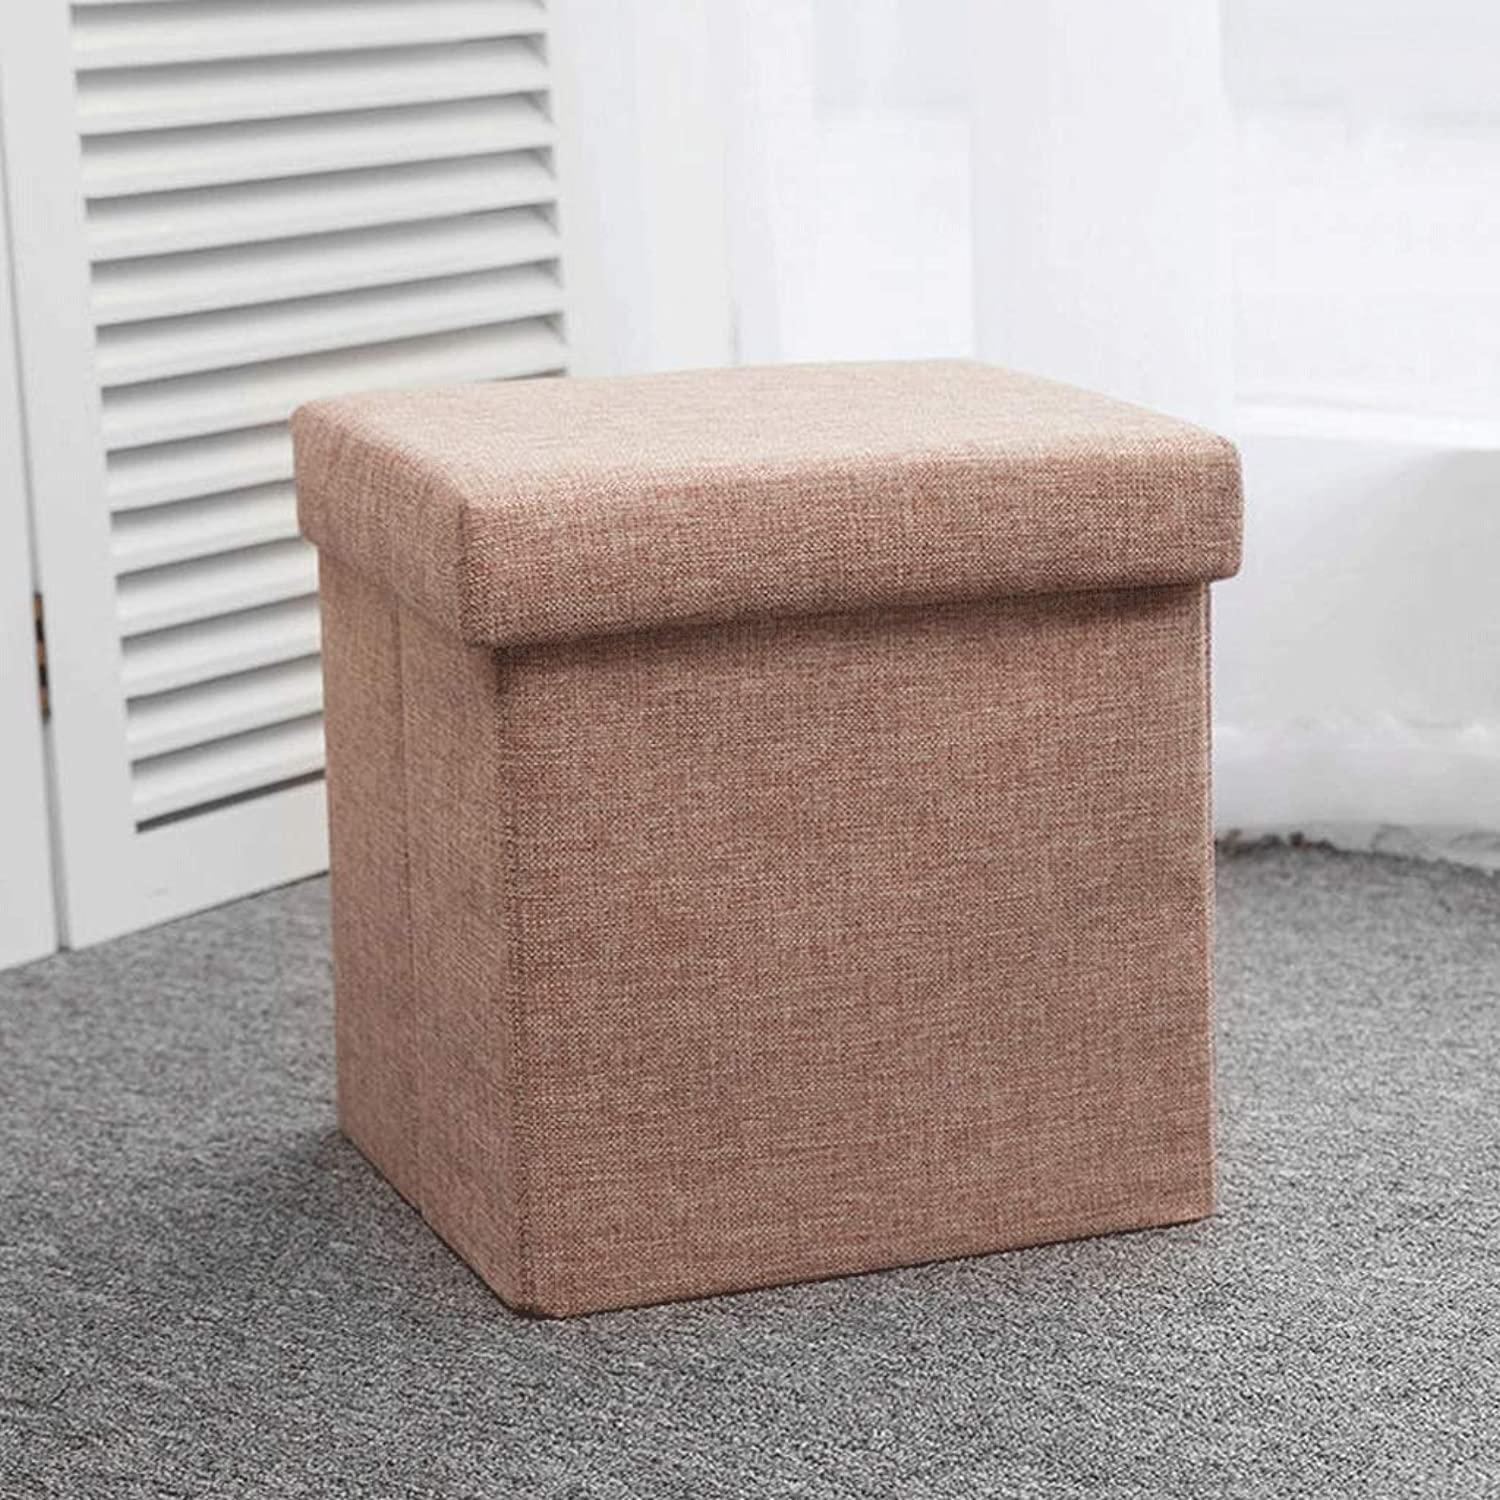 Storage Chest Space Saving Stool Box Folding Stool Footrest (color   Brown, Size   Square)